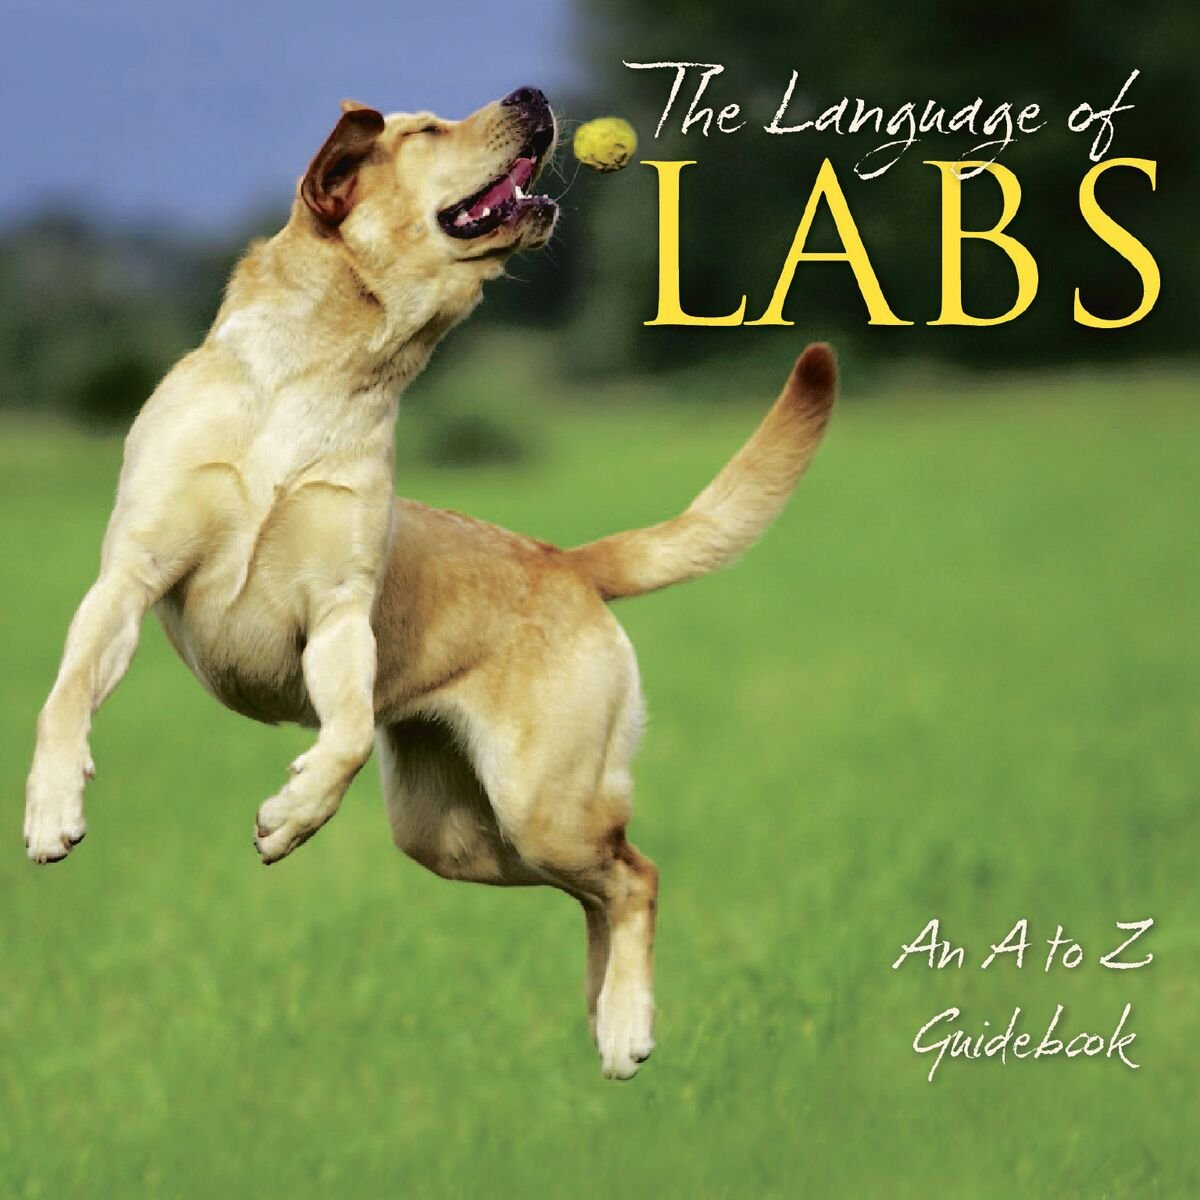 The Language of Labs by Willow Creek Books